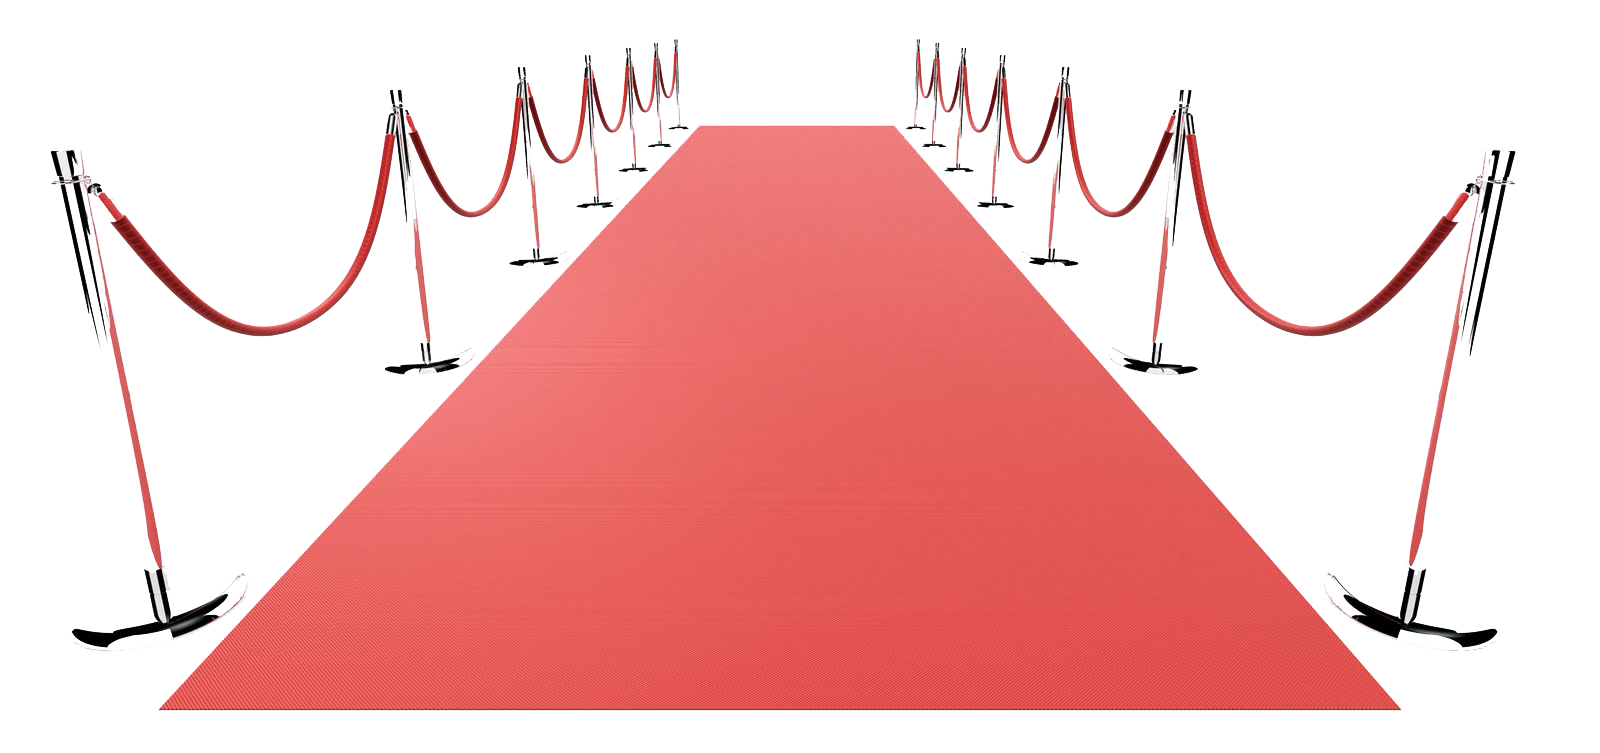 Red carpet png. All